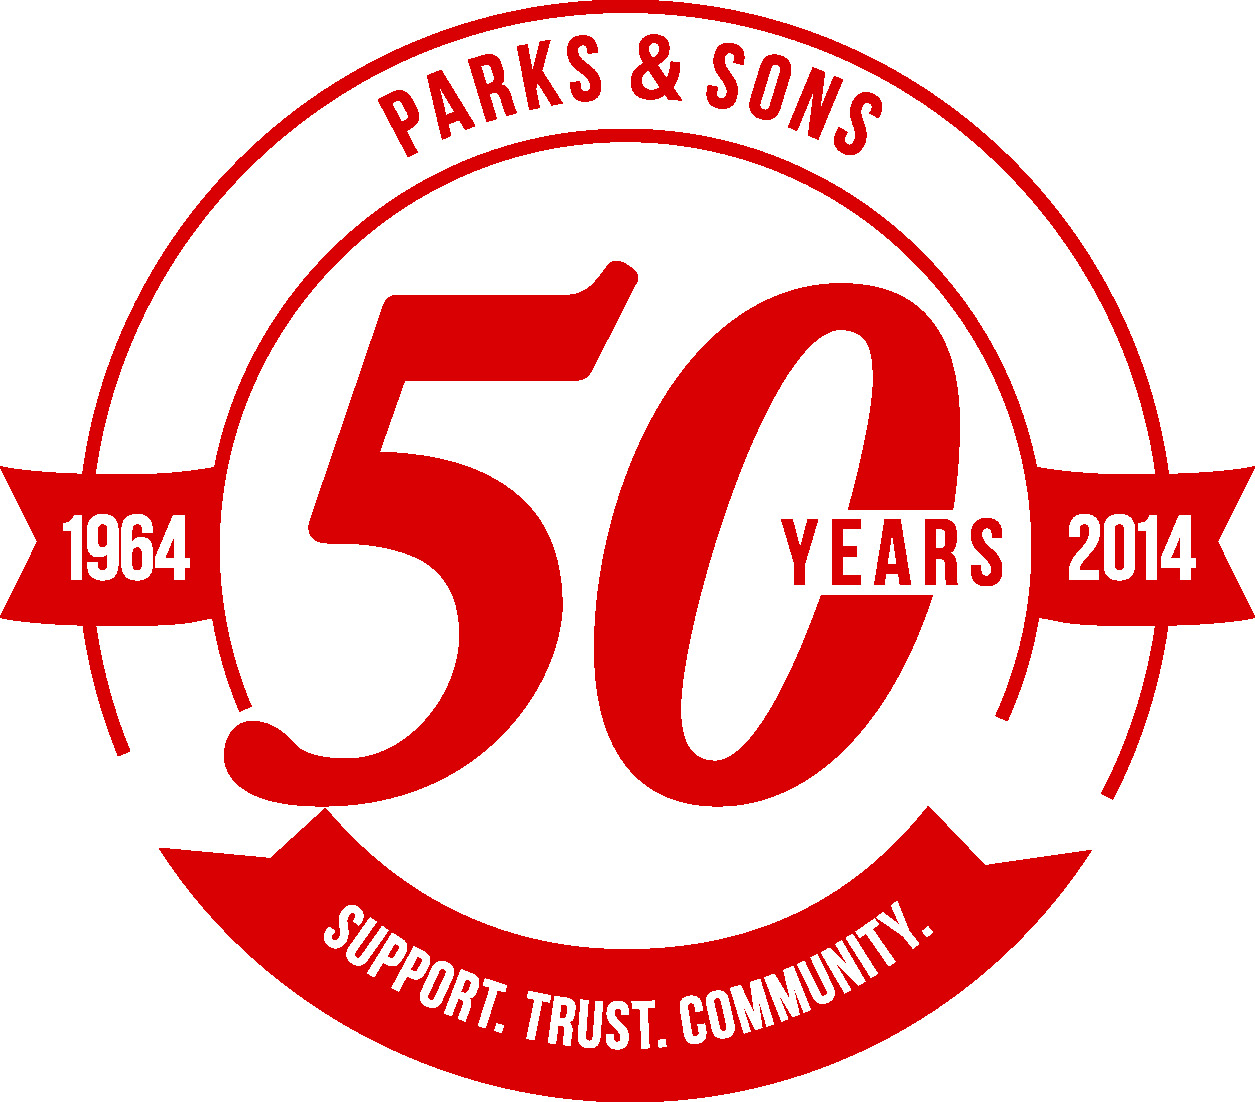 Celebrating Years in Business Celebrating 50 Years of